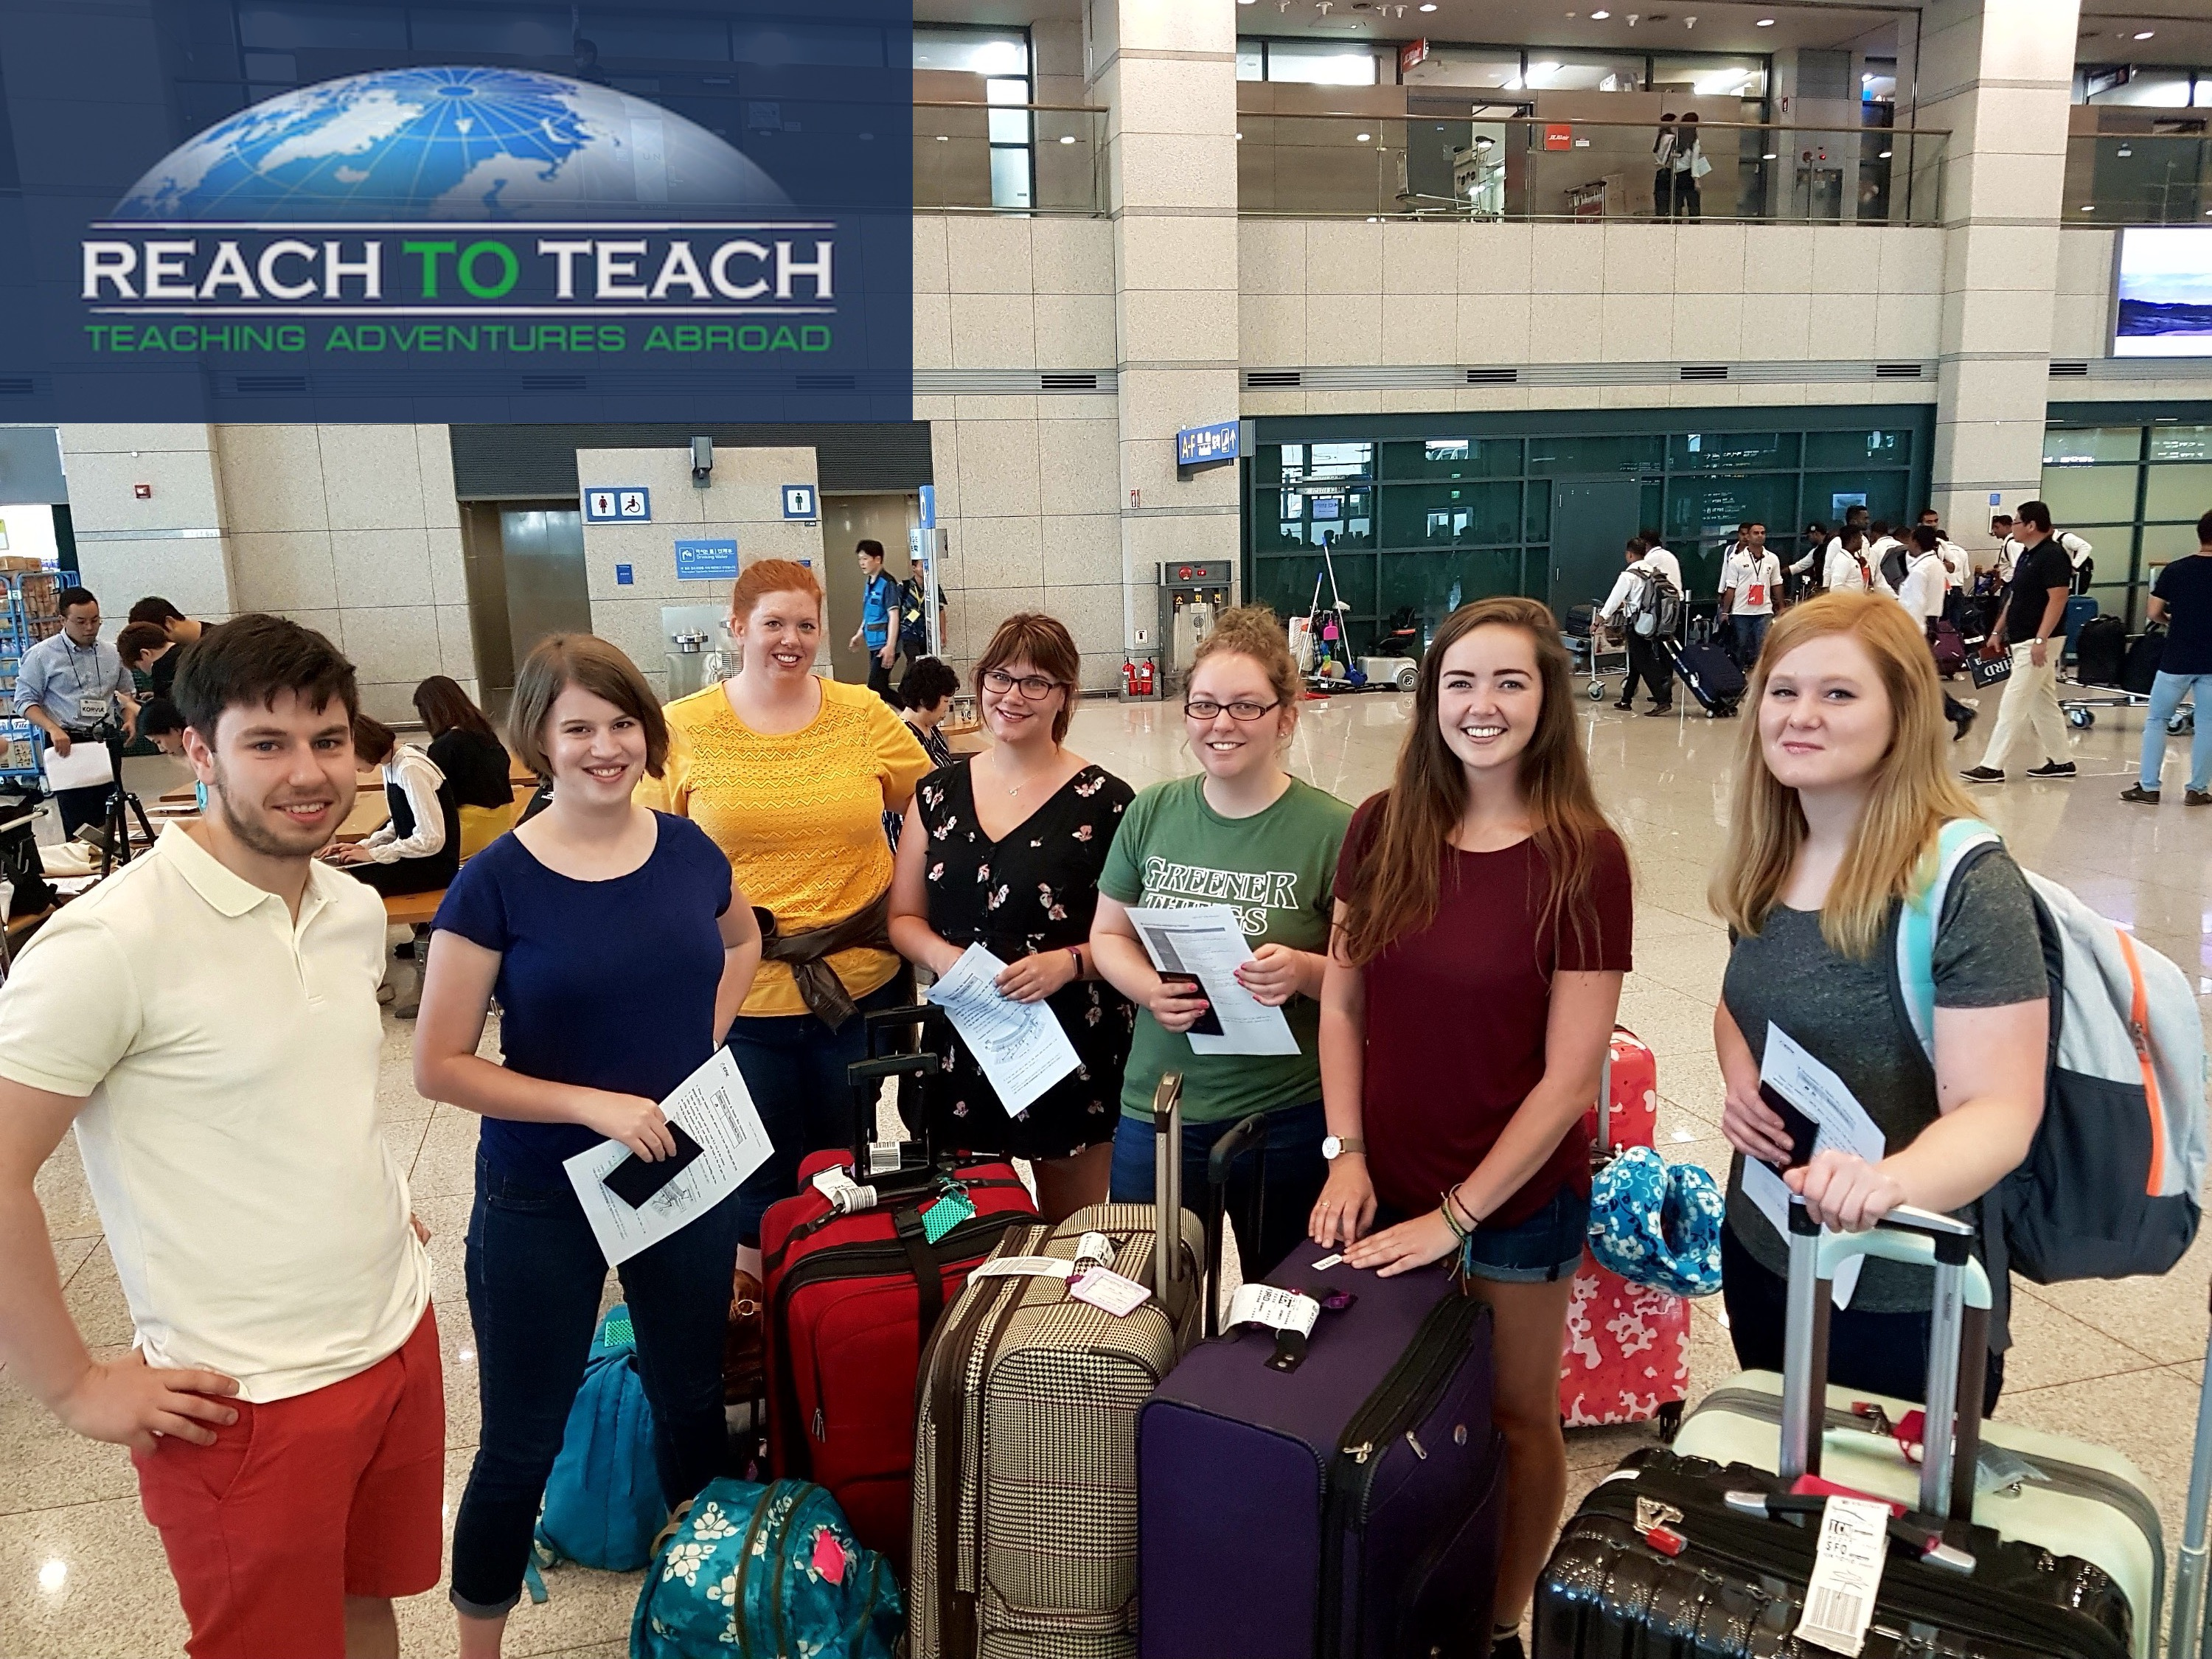 6 female and 1 male TEFL teacher in an airport arrival hall